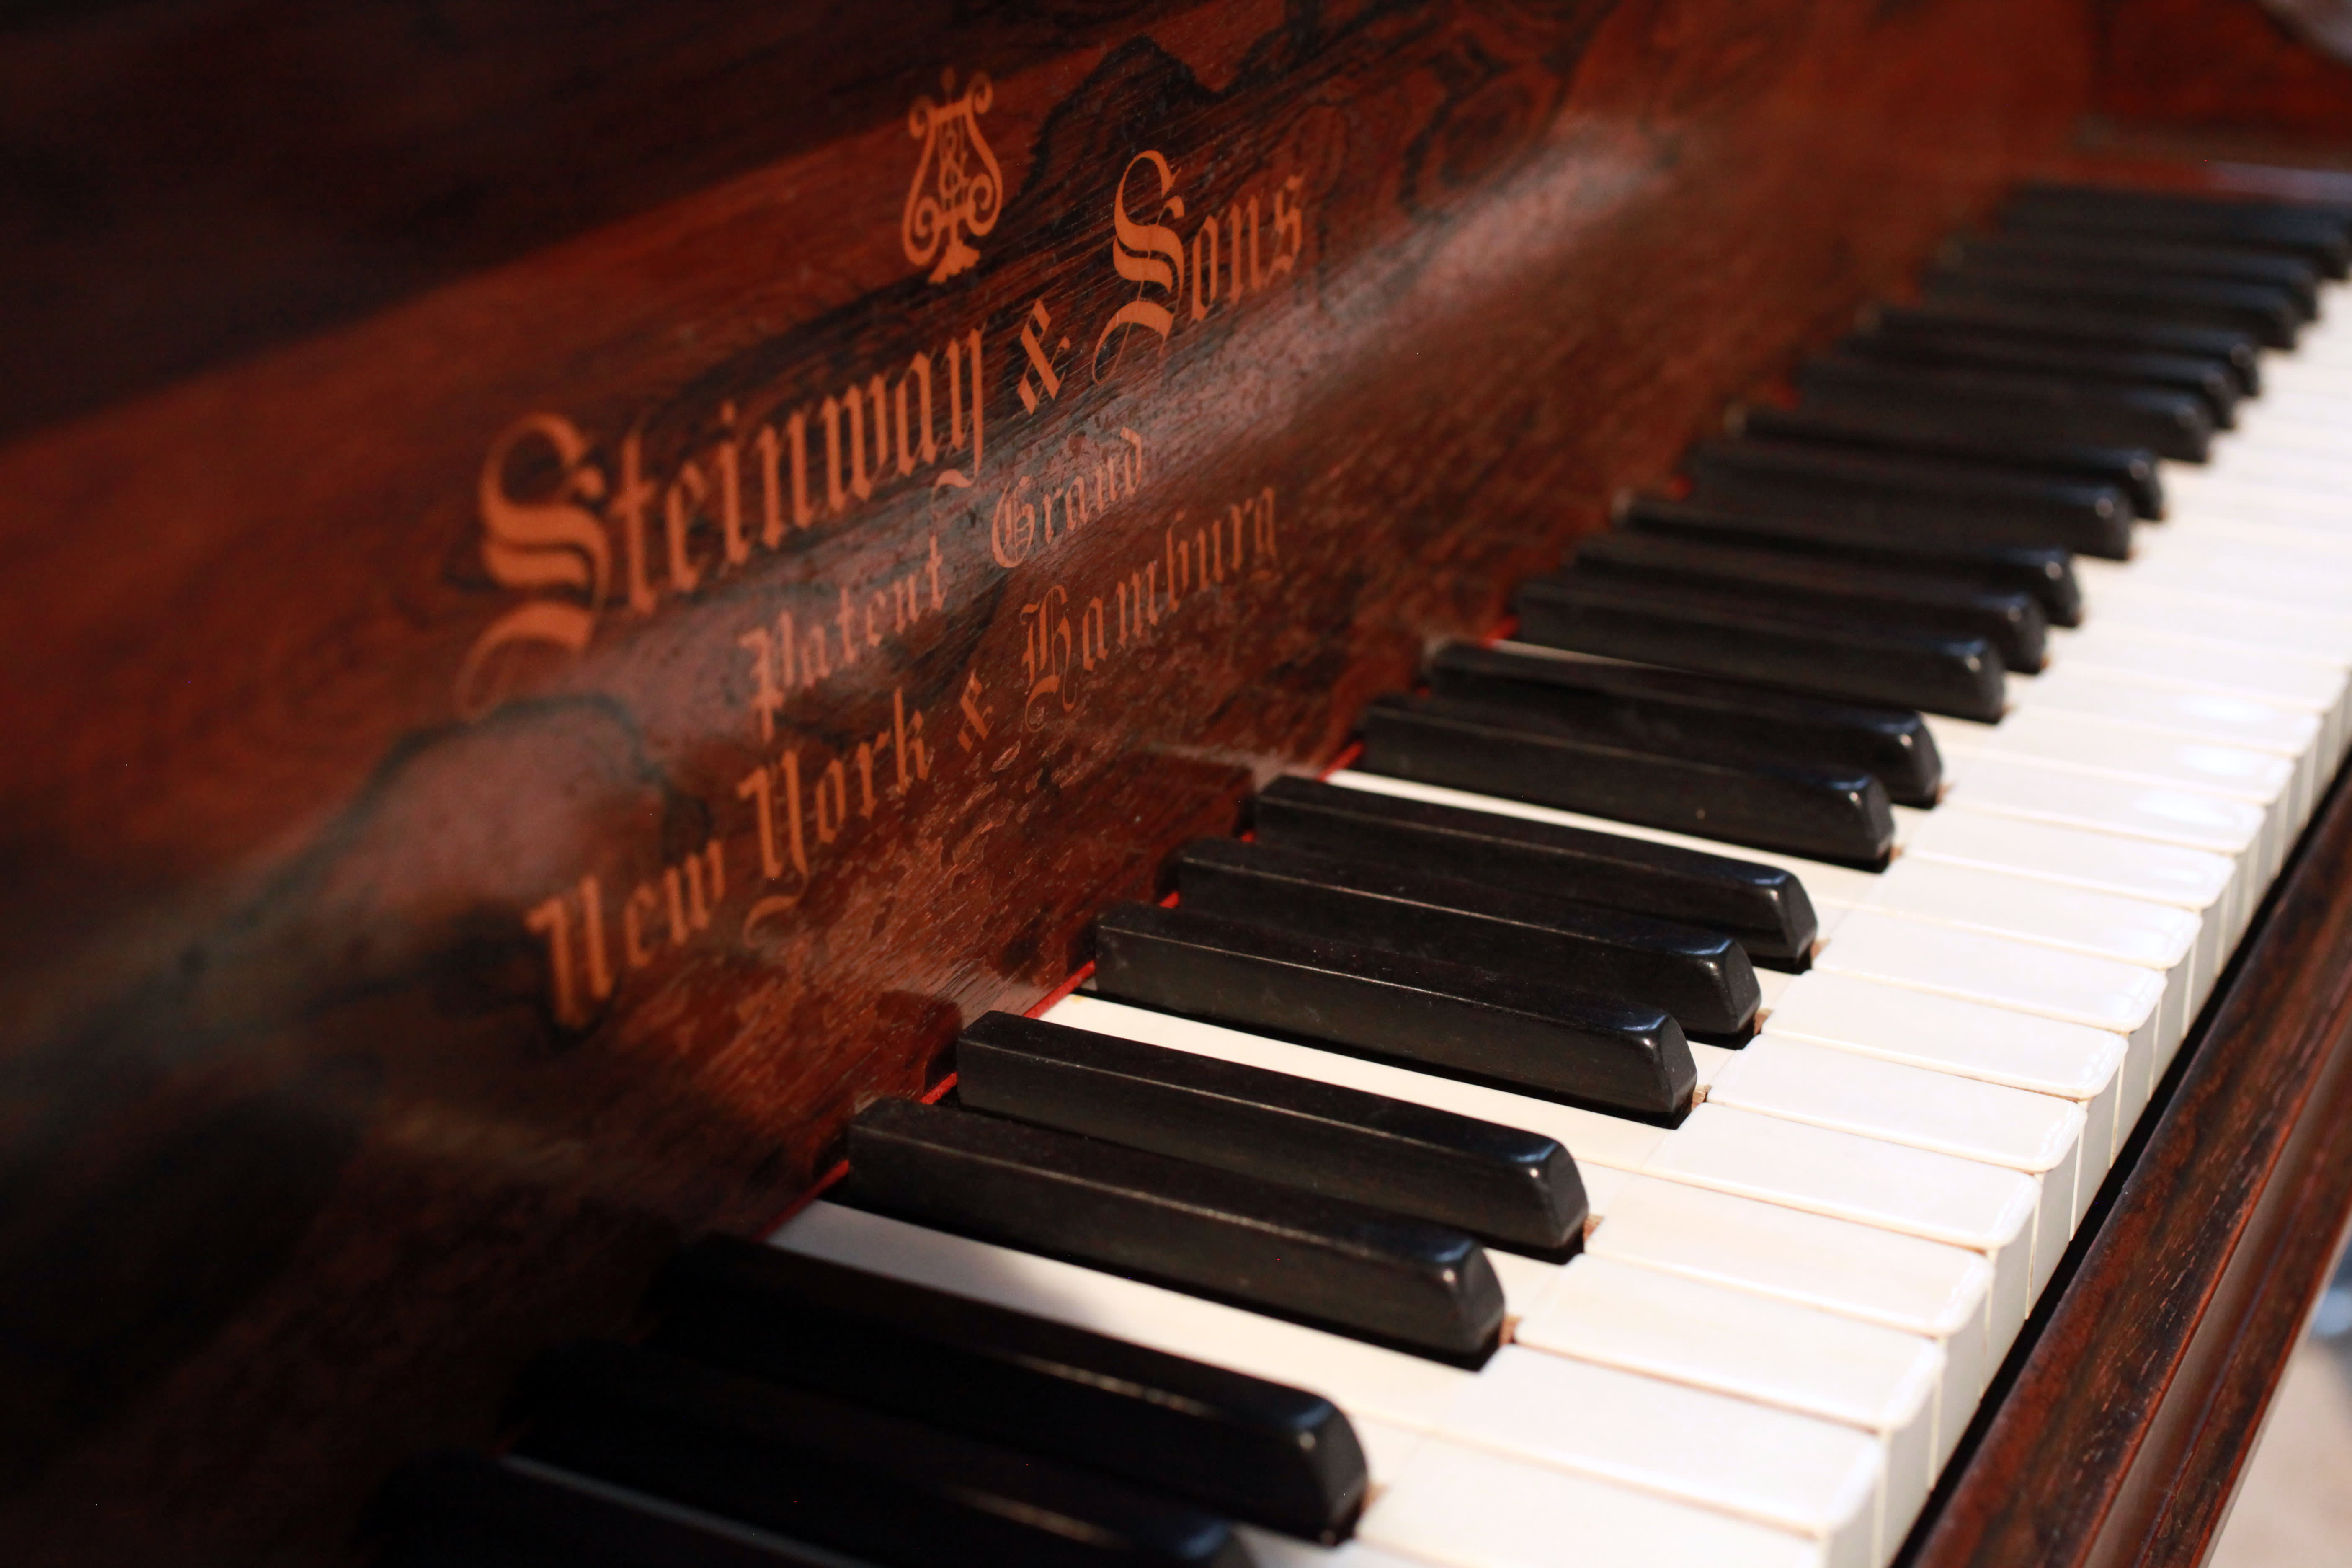 Thomas organ company pension - Steinway Sons Ceo Out Three Years After Billionaire John Paulson Purchase